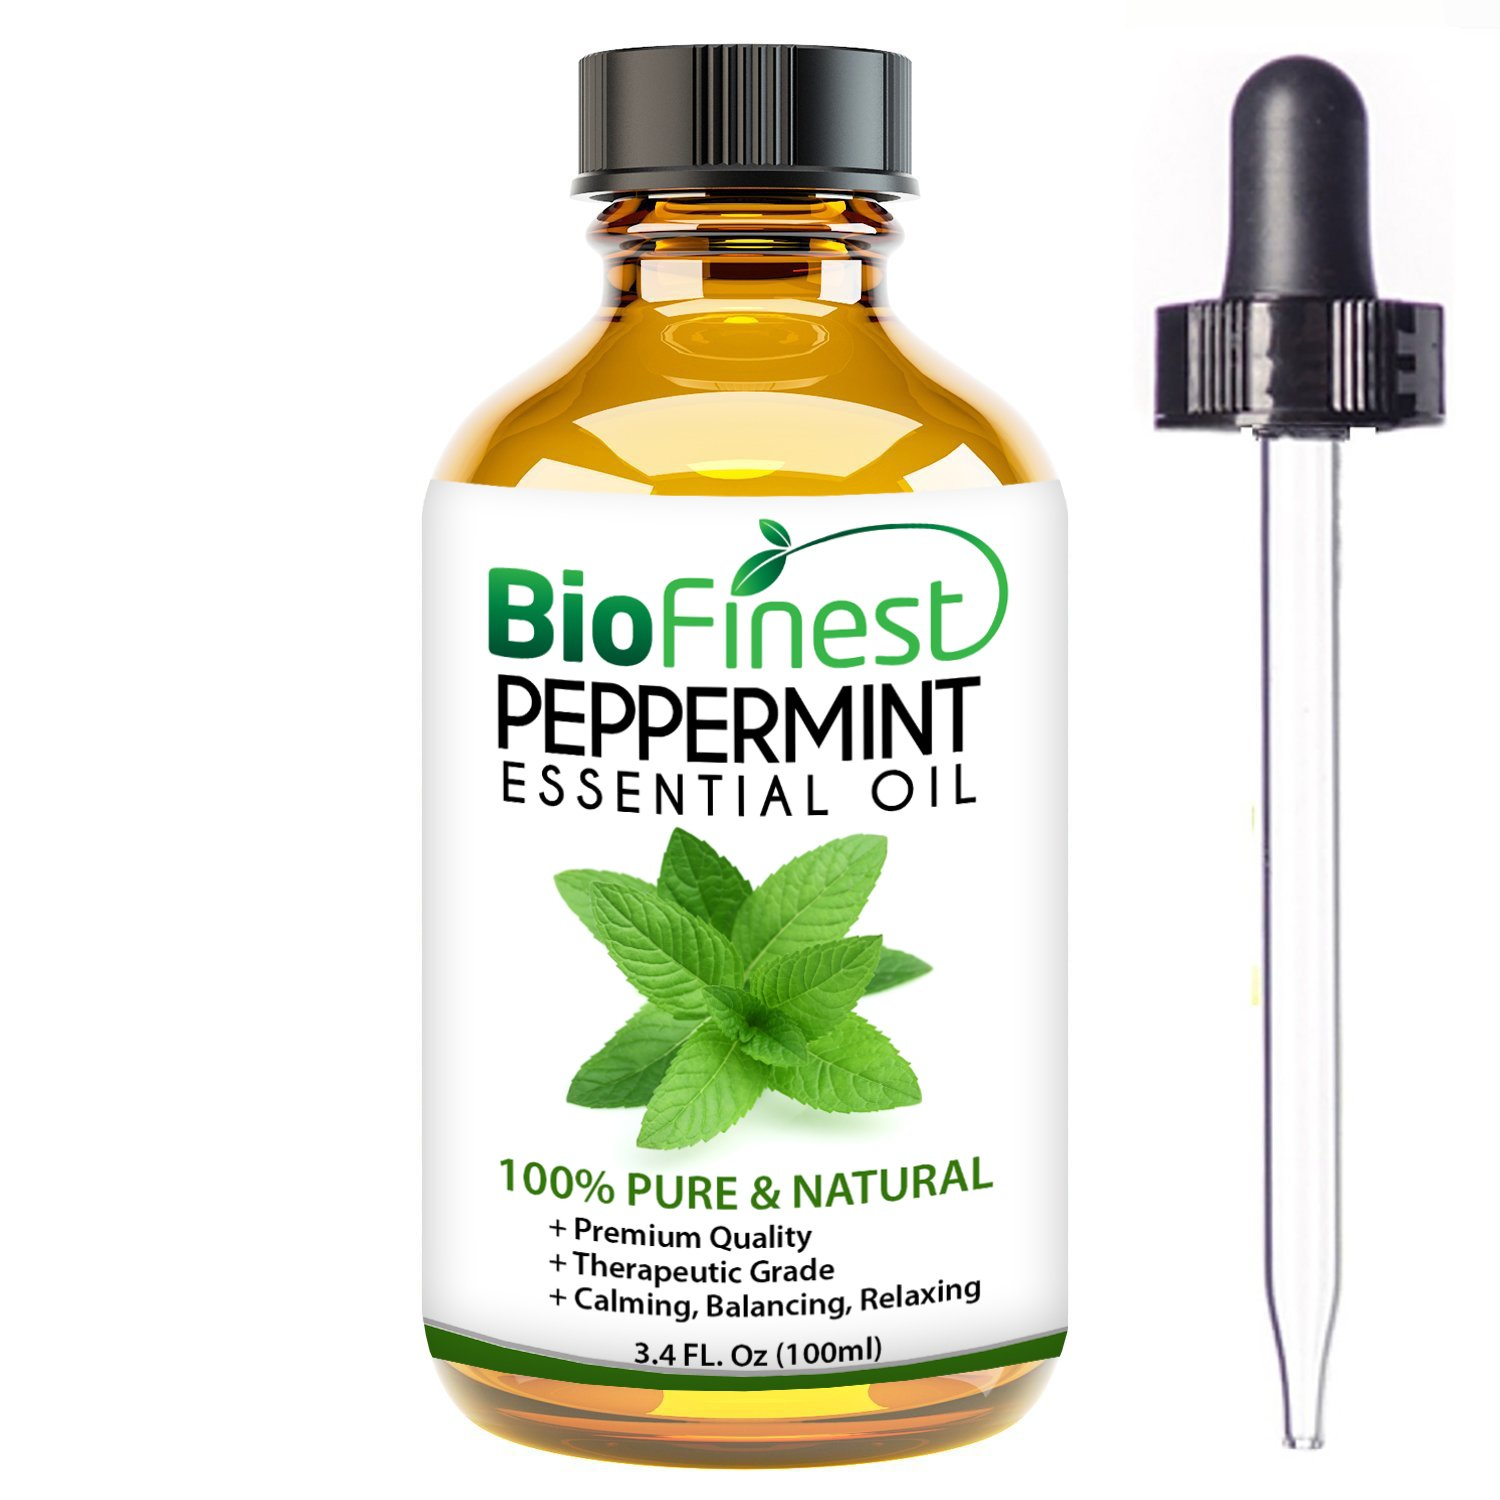 Amazon.com: BioFinest Peppermint Oil - 100% Pure Peppermint Essential Oil - Therapeutic Grade - Premium Quality - Best For Aromatherapy, Headaches and ...